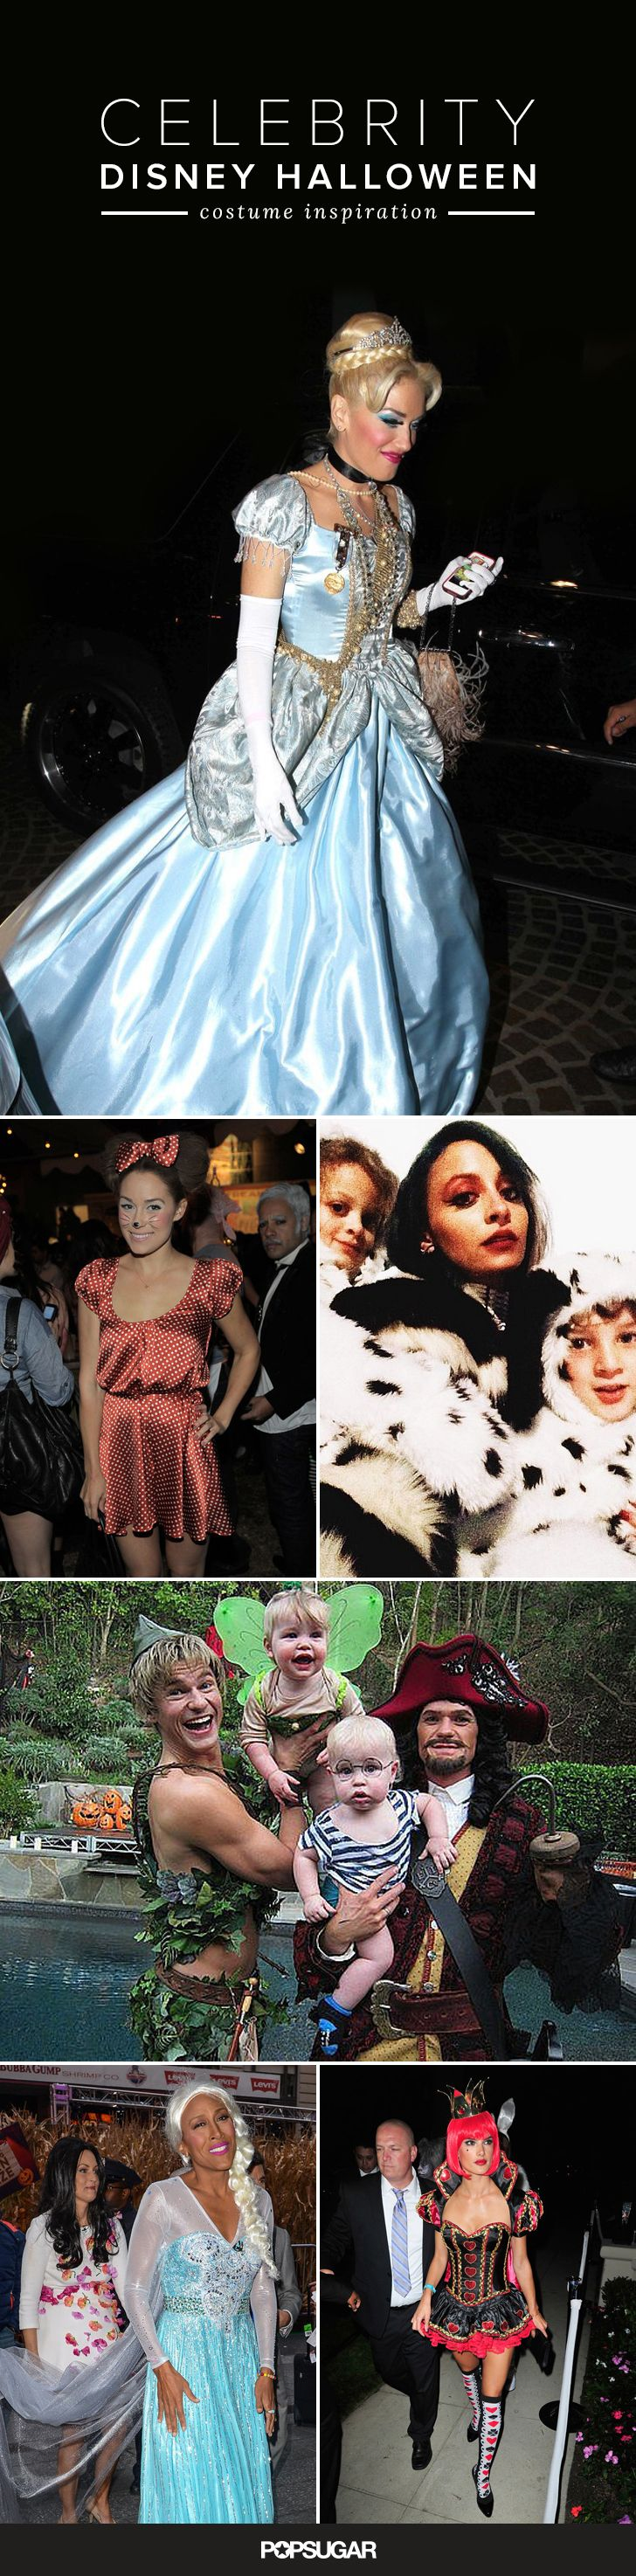 Get your Disney Halloween costume inspiration from the stars!